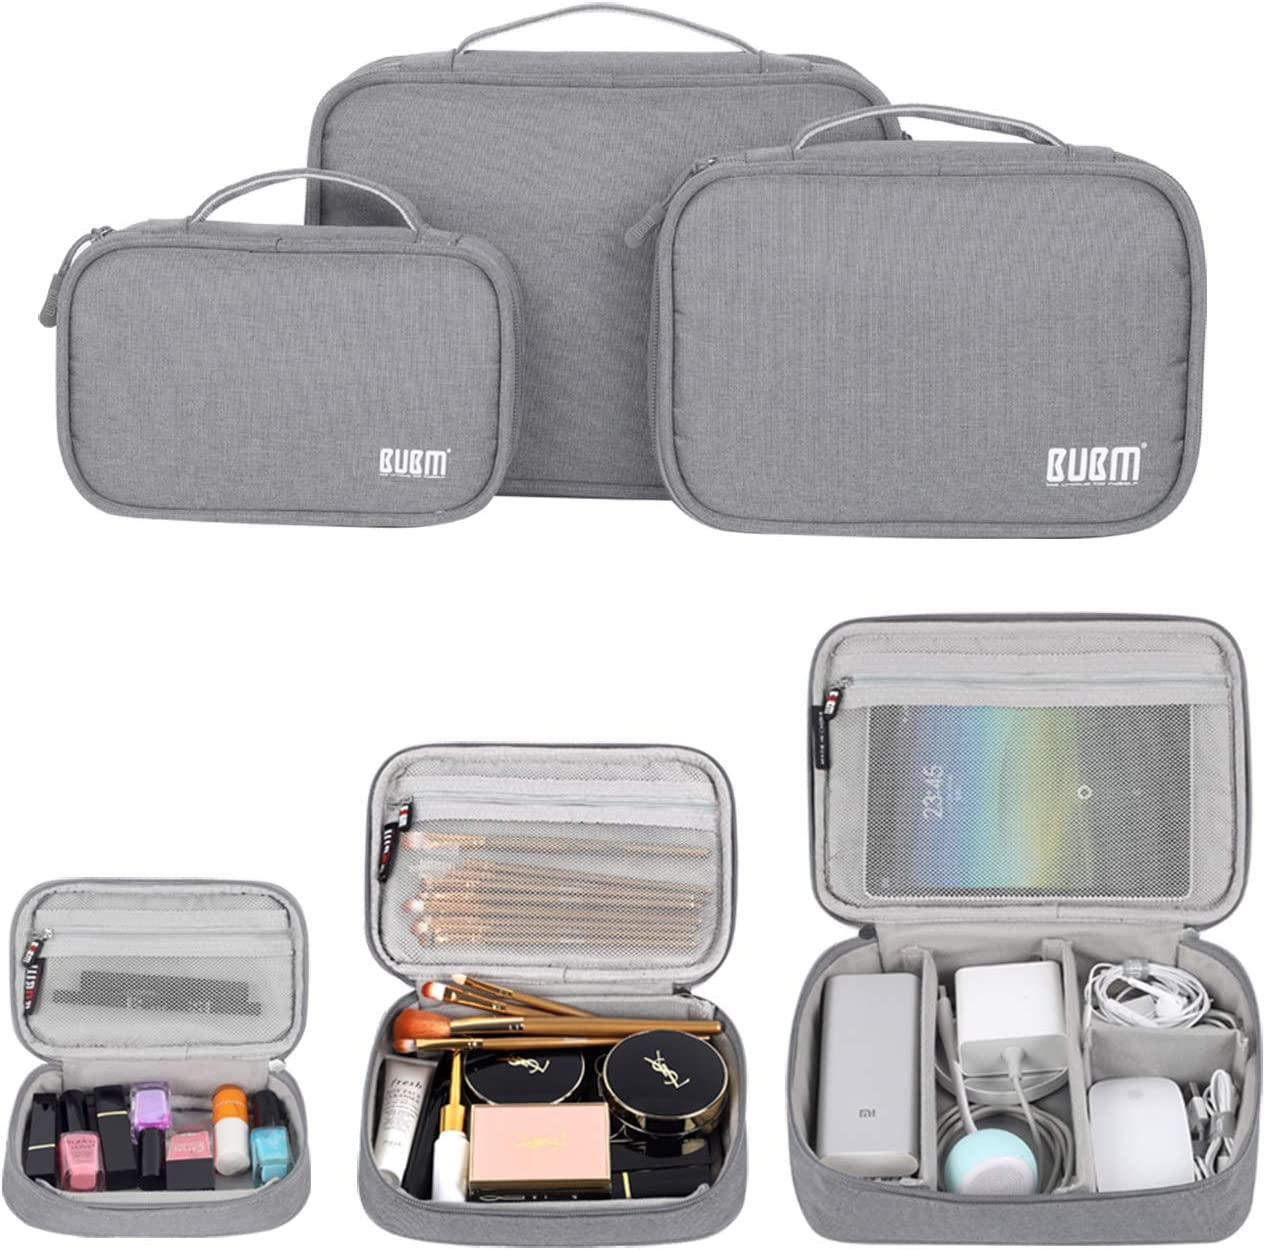 BUBM Cable Organizer Bag 3pcs Electronics Travel Organizer for Hard Drives, Cables, Phone, USB, SD Card(2 Year Warranty (Gray, L)